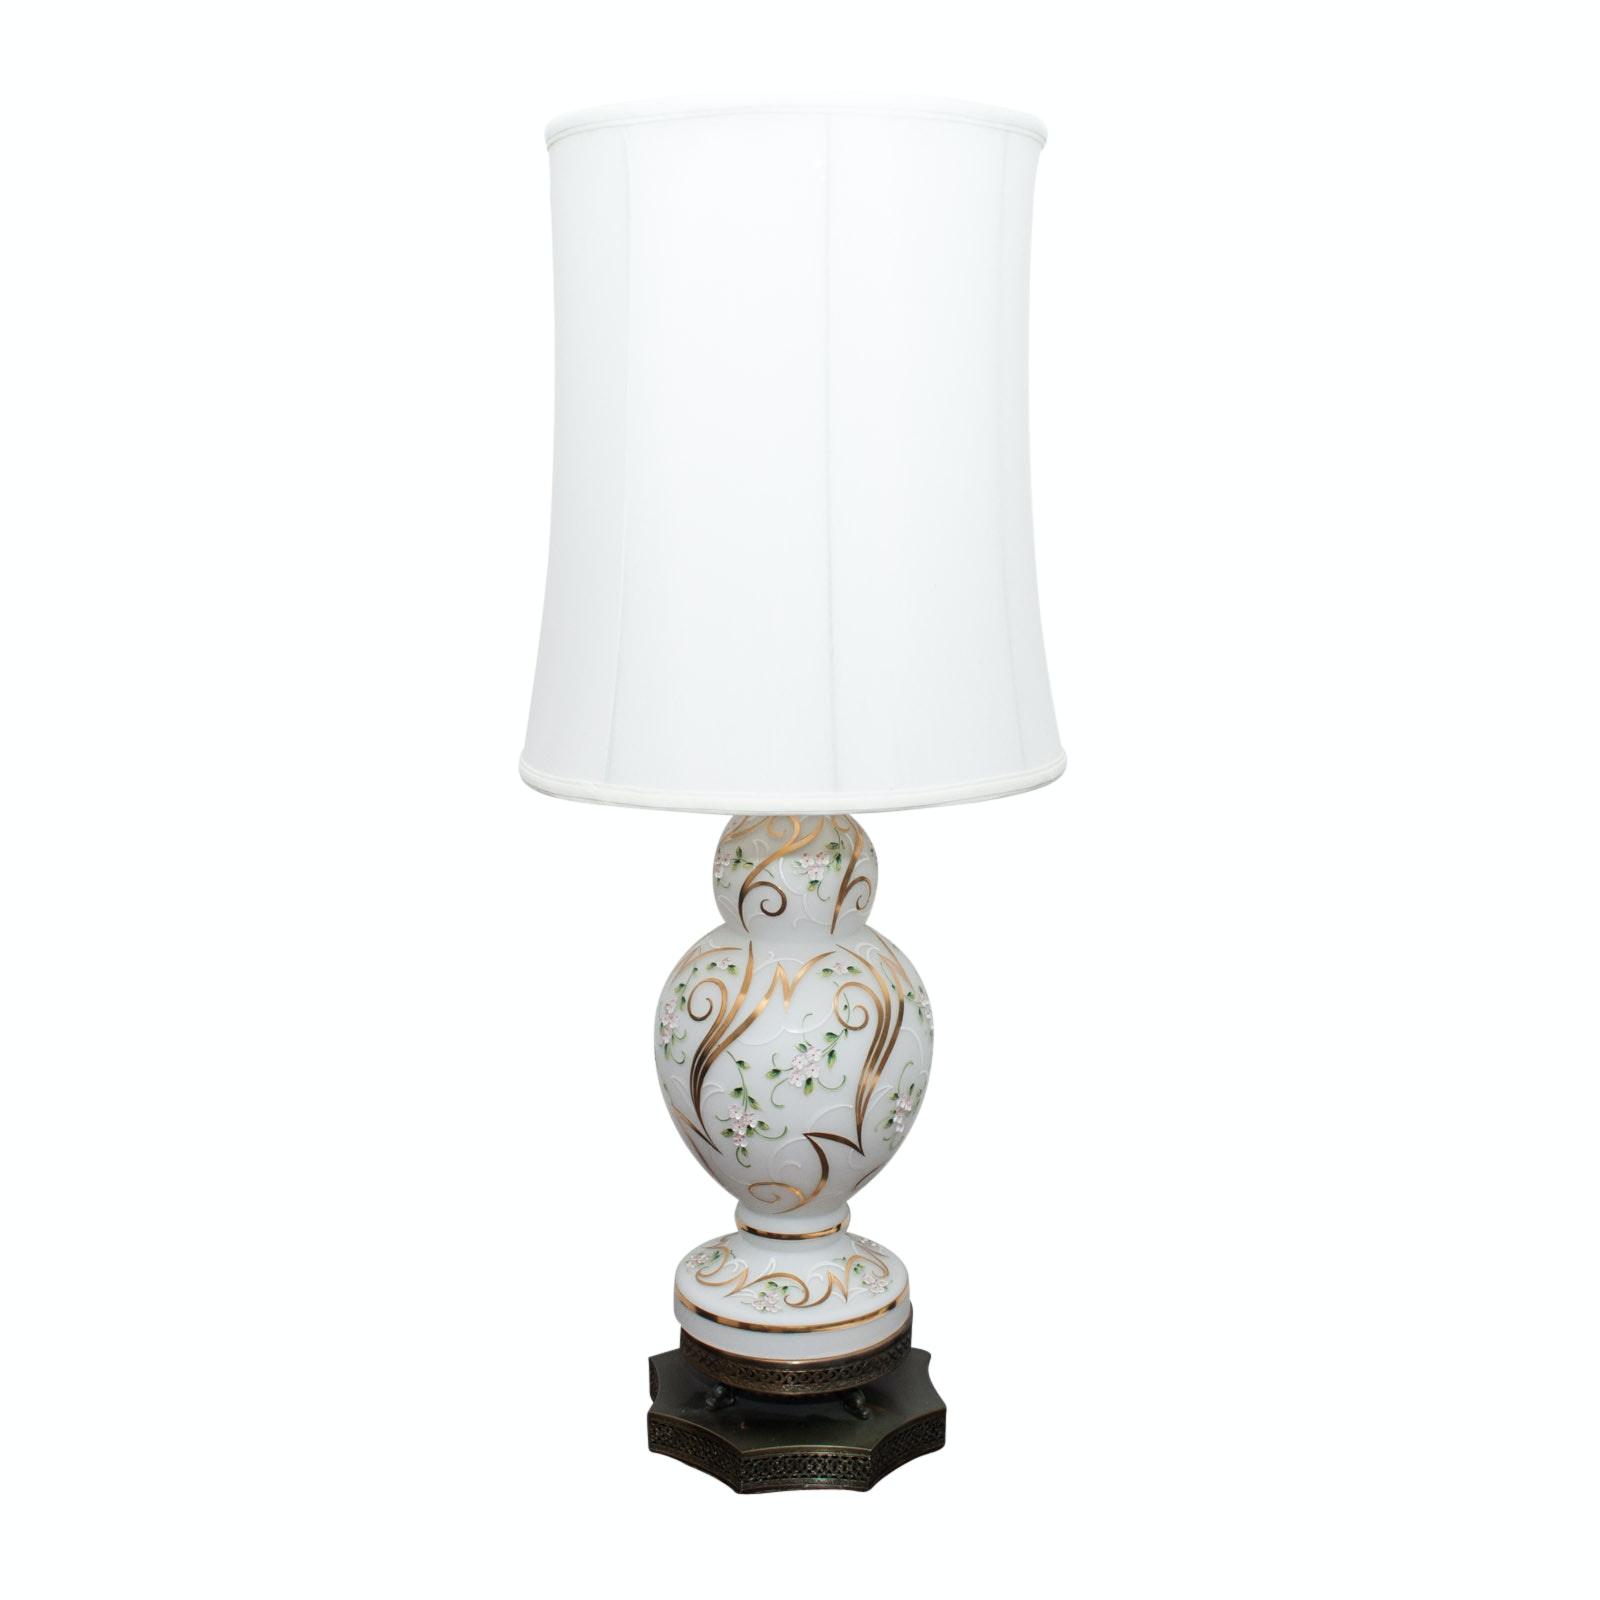 Vintage Hand-Painted Table Lamp